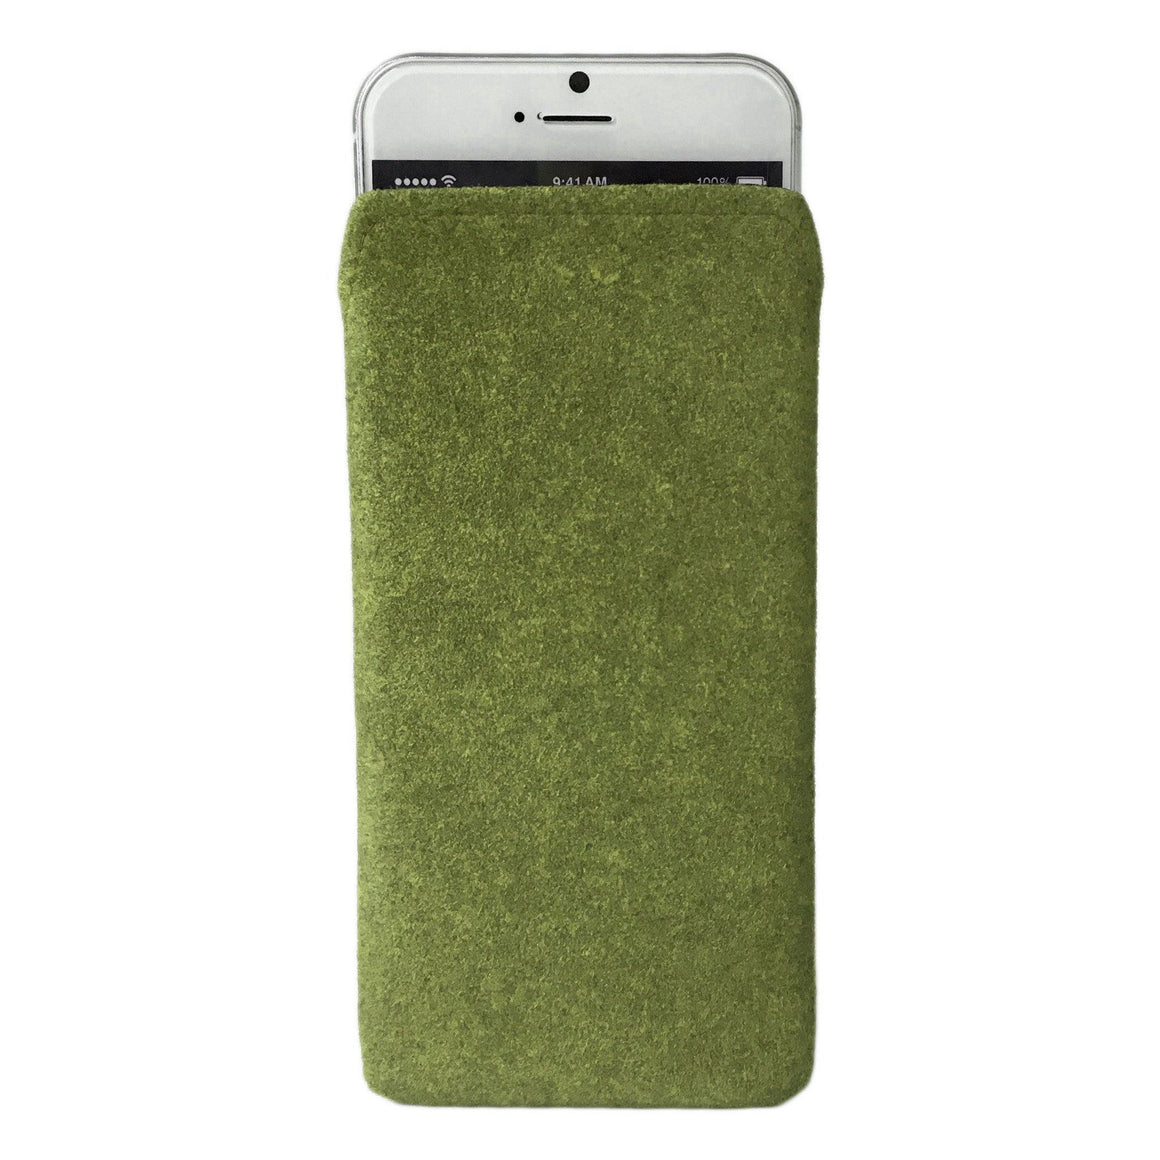 iPhone Alcantara Pouch Pashma Greens - Wrappers UK